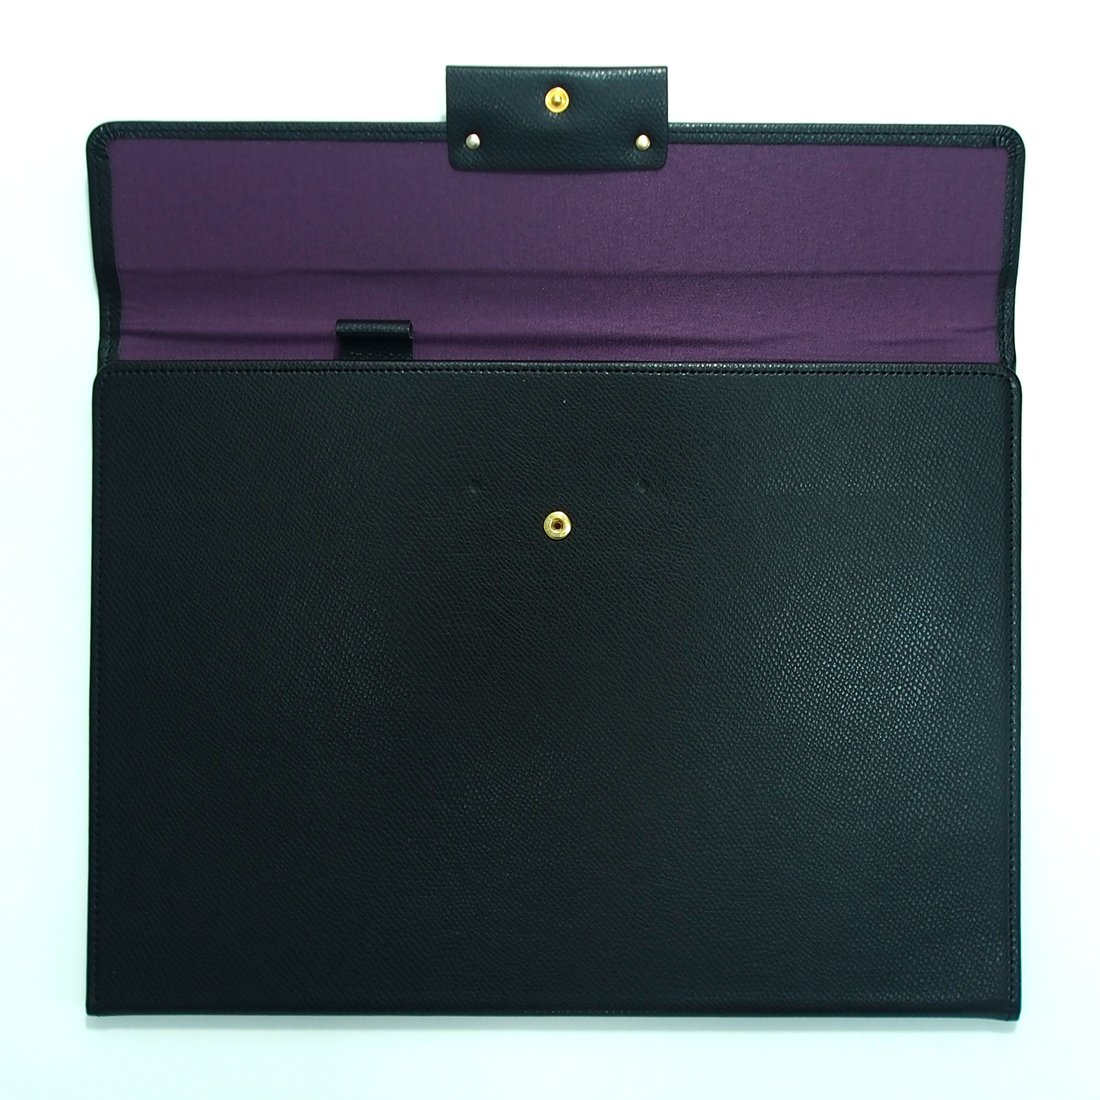 Grand Classy 8 Pockets File Holder with AHZOA Pencil (black) by Monopoly (Image #8)